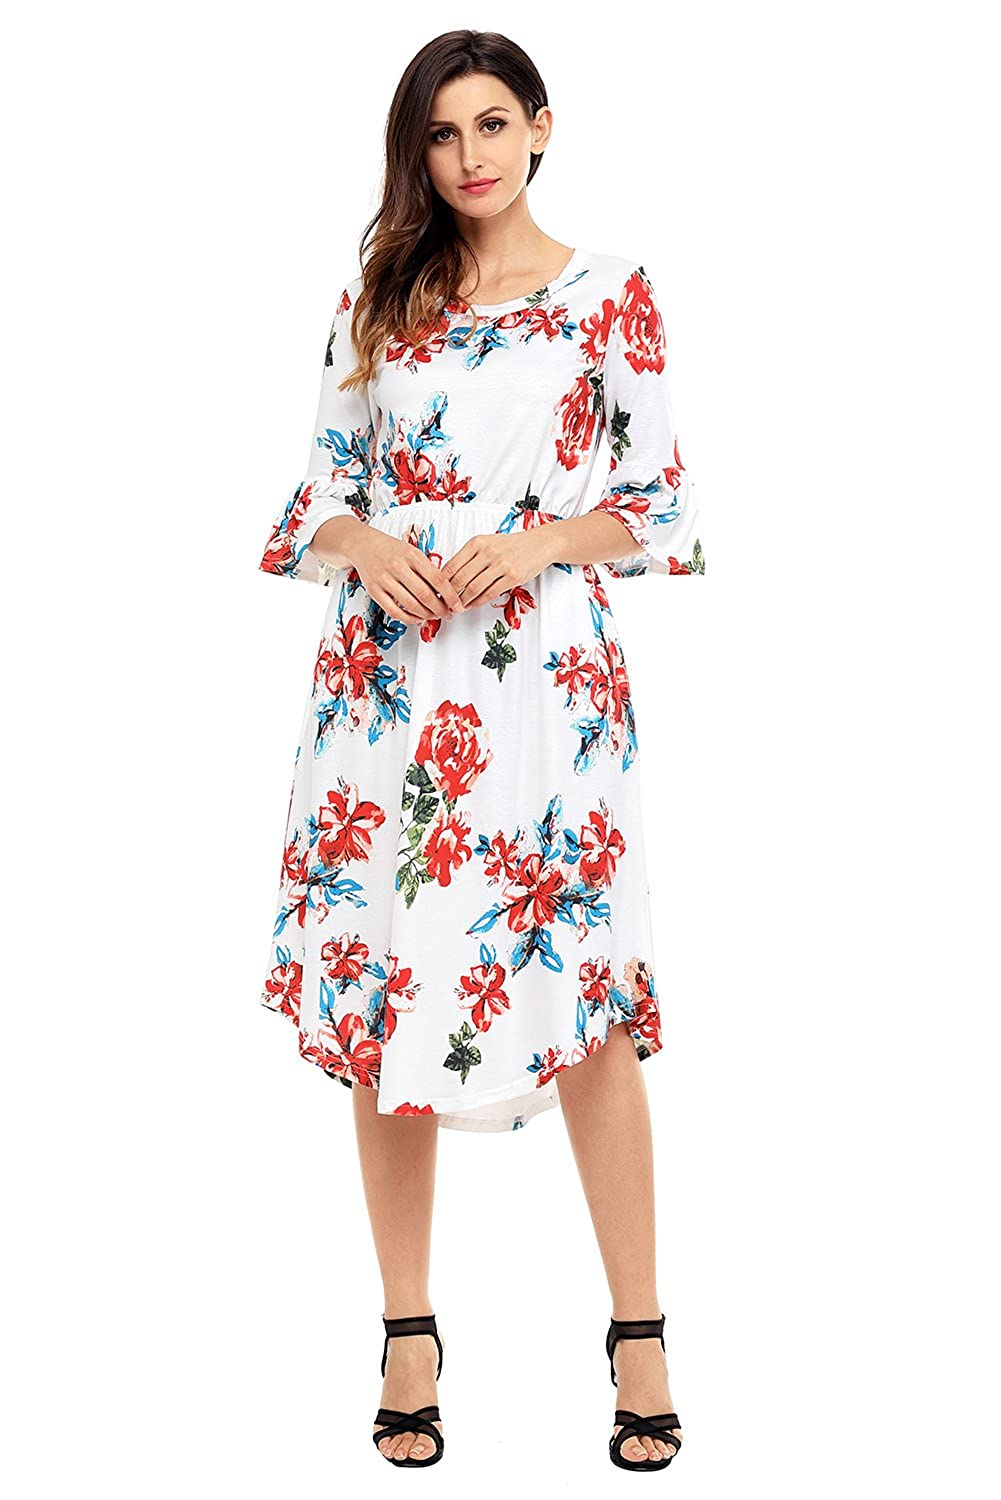 72b6007f8451 Annflat Women s Summer Floral Print Bell Sleeve Casual Midi Dress with  Pockets S-XXL at Amazon Women s Clothing store